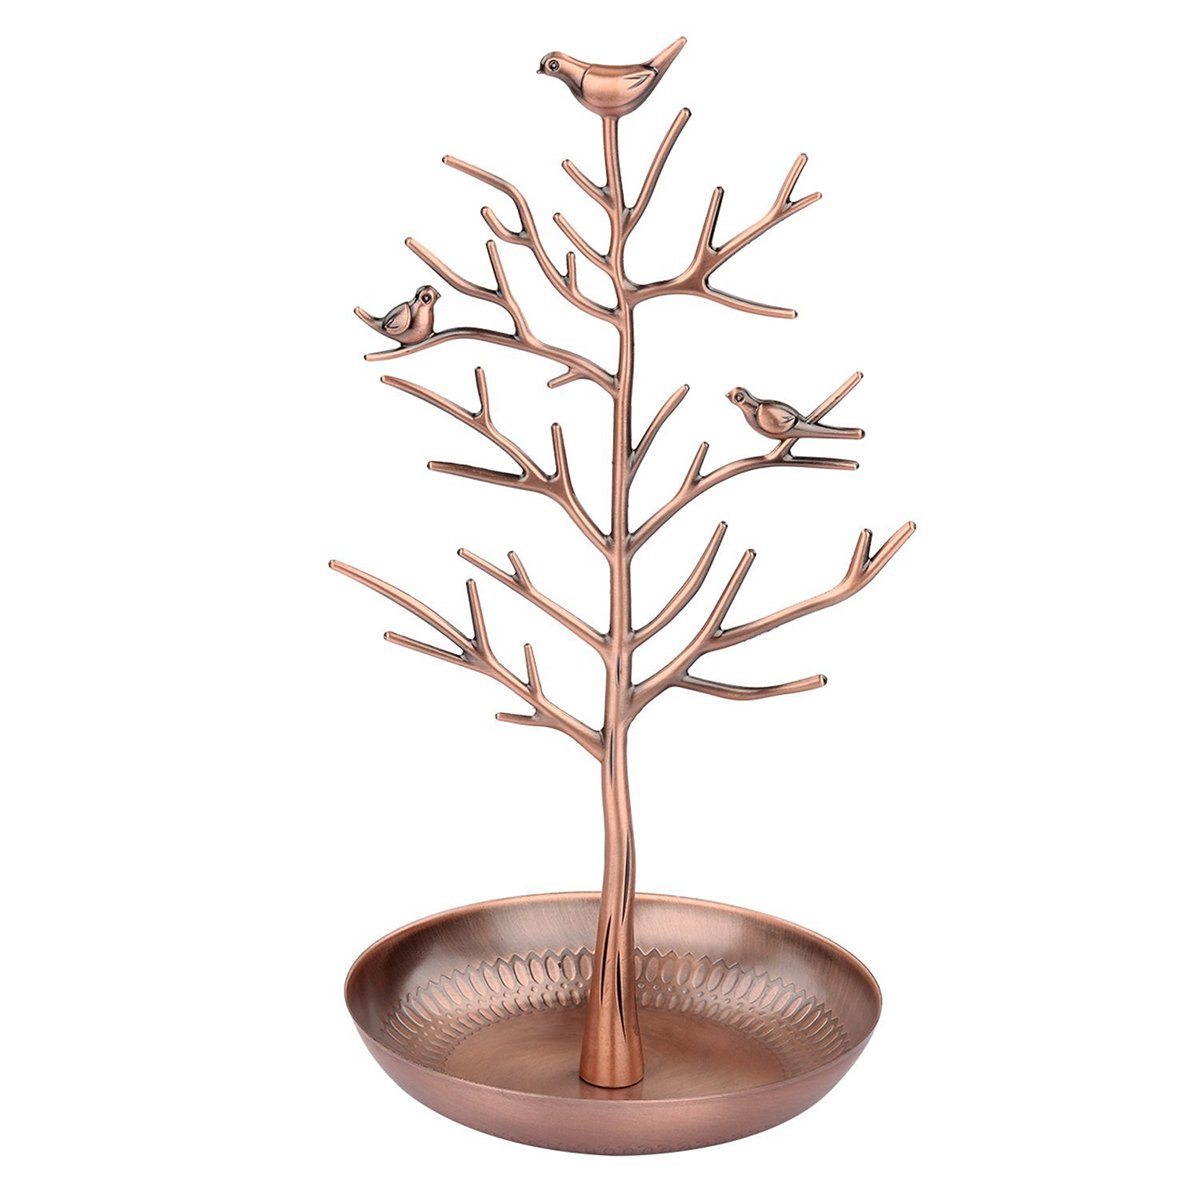 Tinksky Jewelry Tree Display Stand Holder Organizer Tower for Earring Necklace Ring, Rose Gold, 6 x 6 x 12 inch